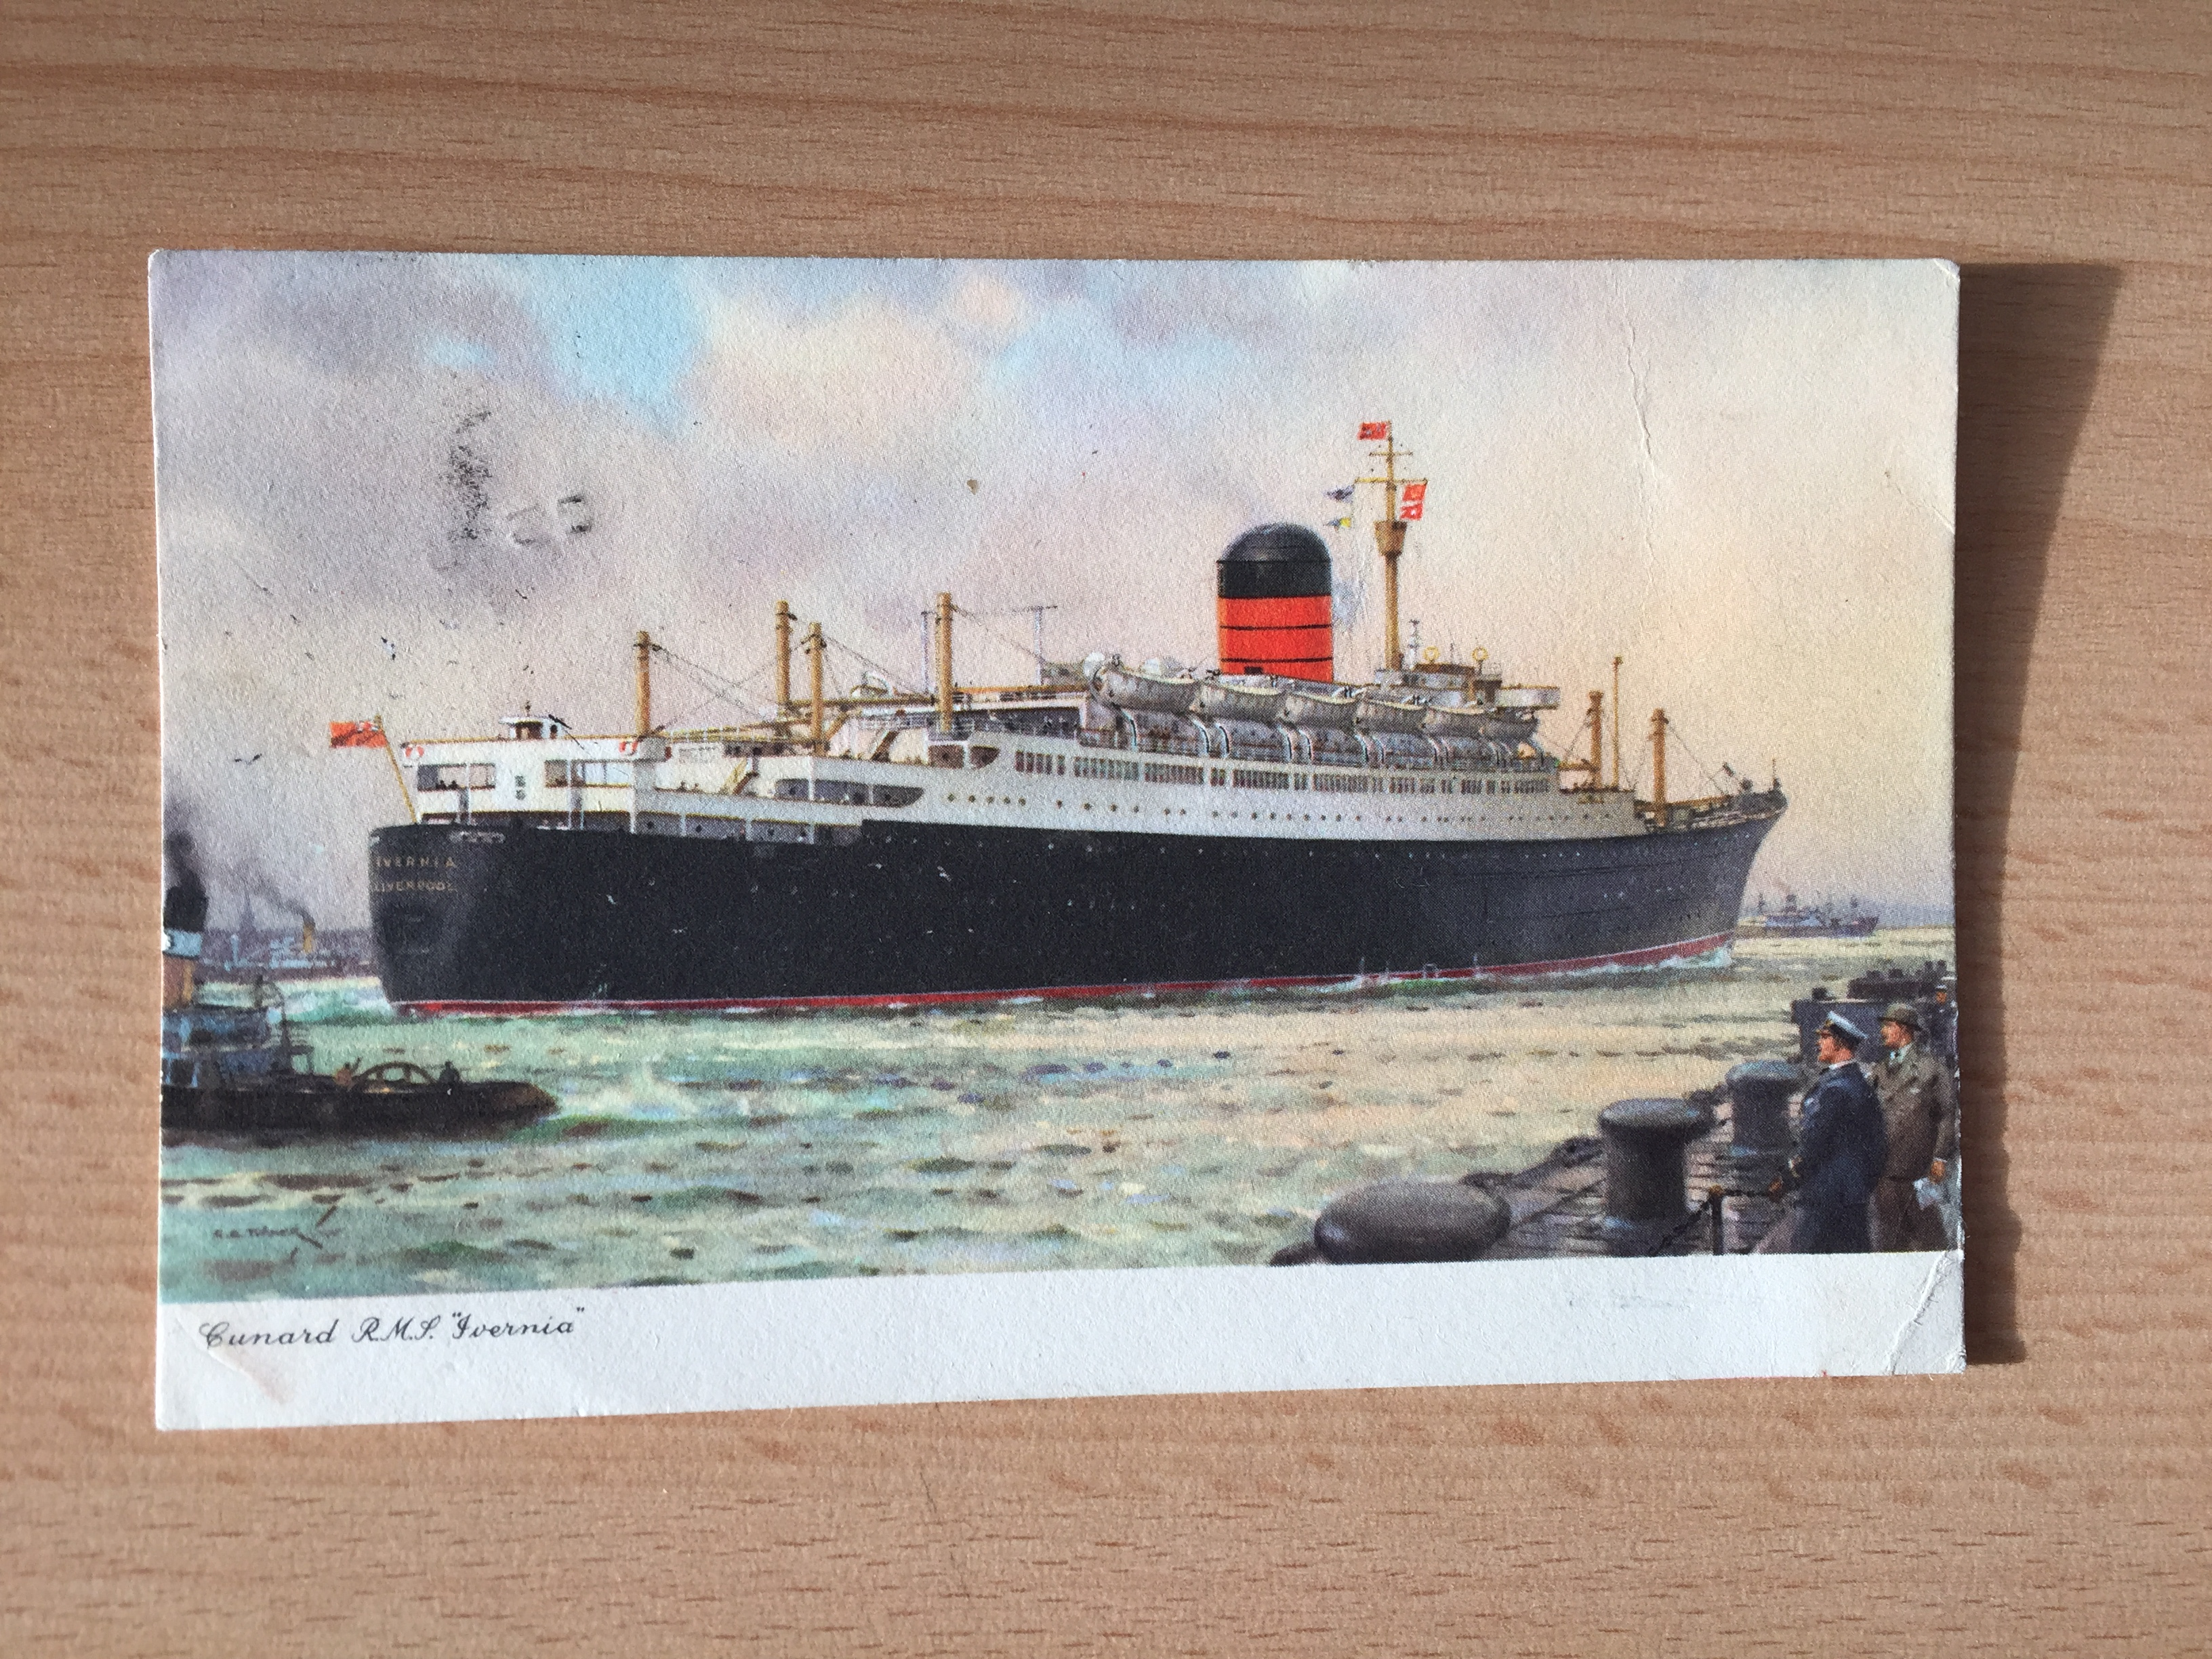 UNUSED COLOUR POSTCARD OF THE CUNARD LINE VESSESL THE RMS IVERNIA